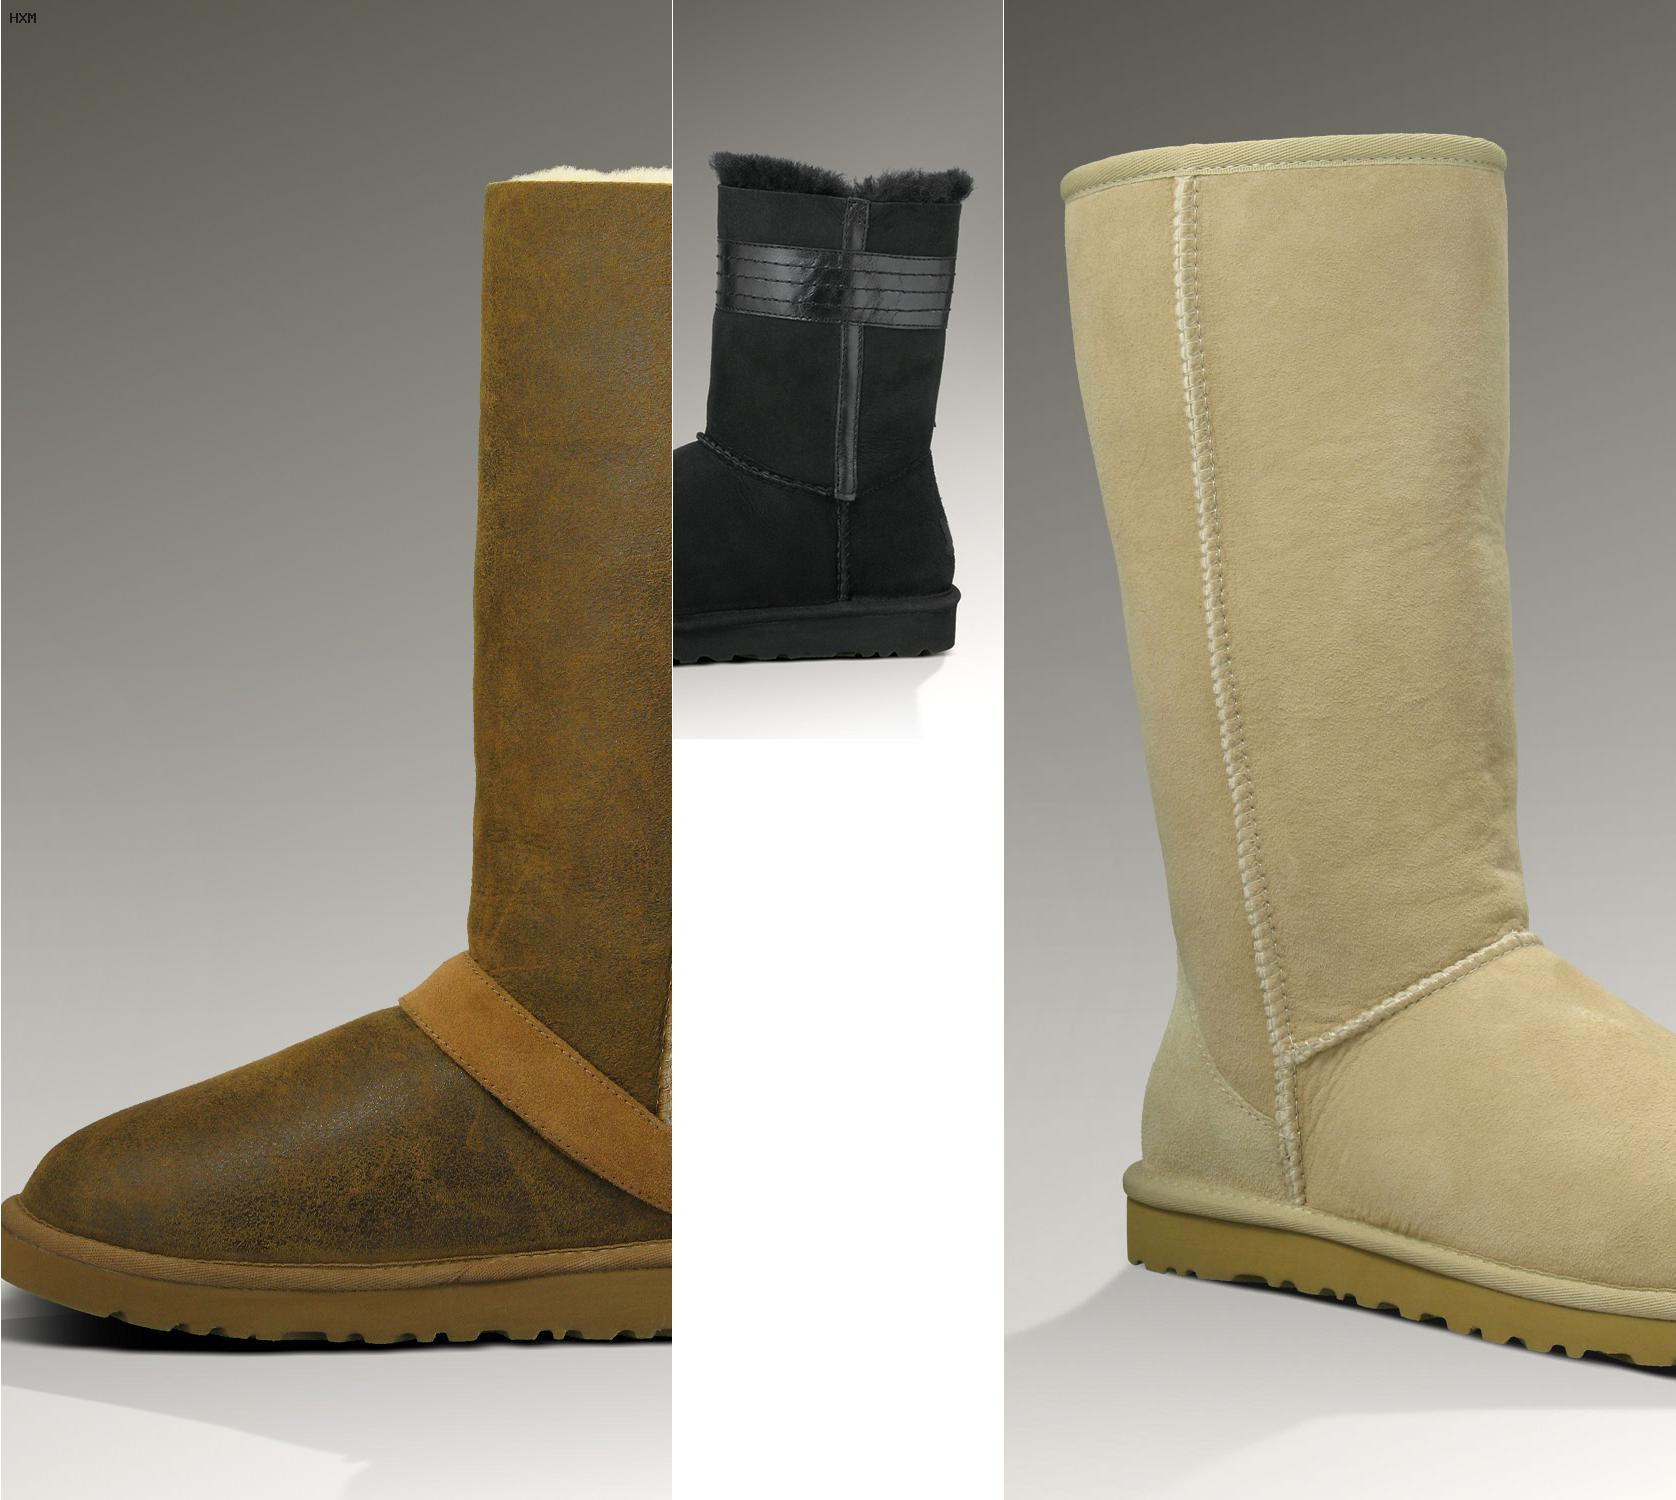 botte style uggs